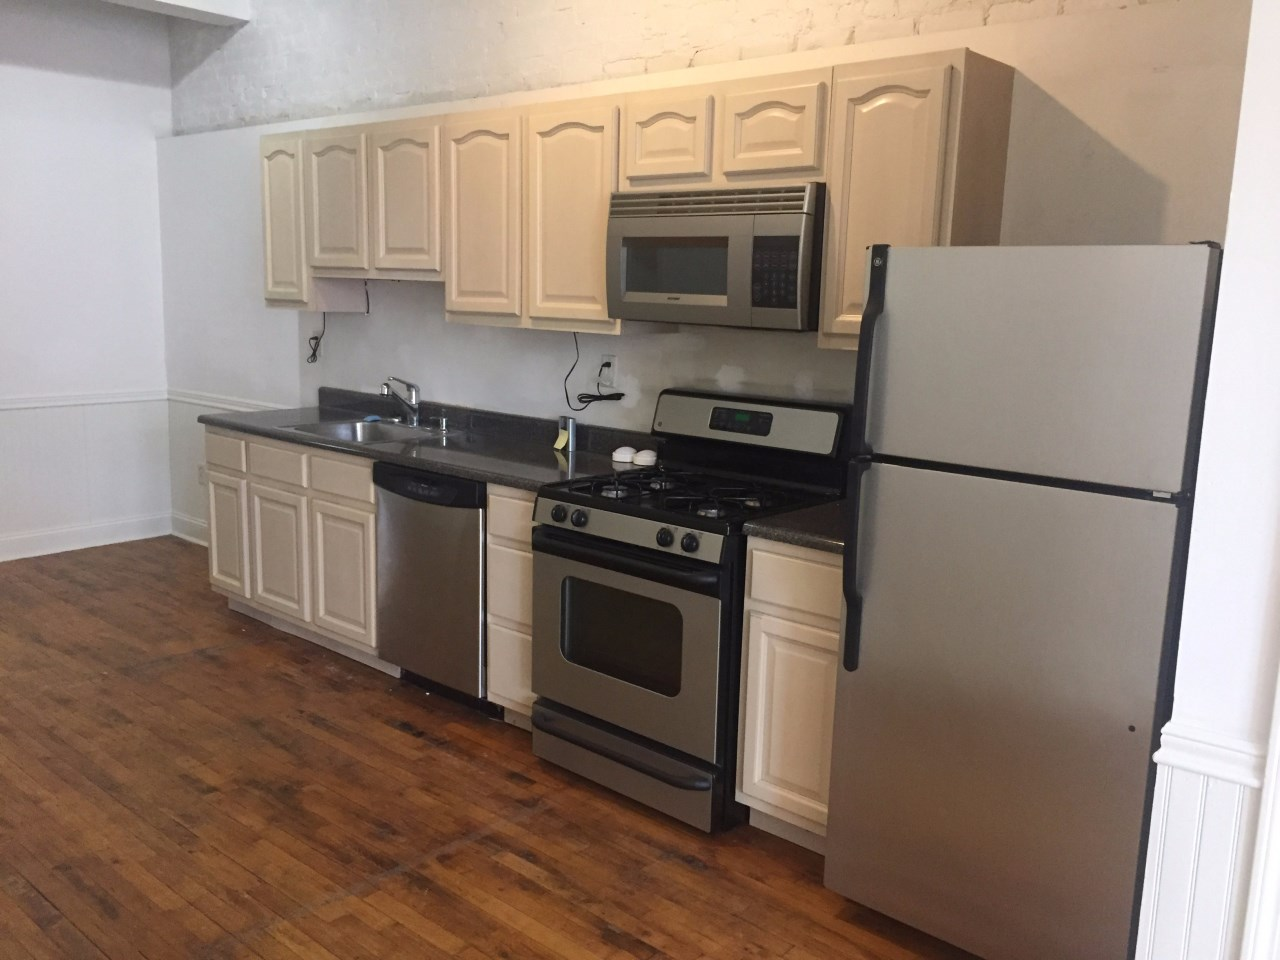 Apartment Remodel Downtown Jersey City Time for Transformation Kitchen Before 01